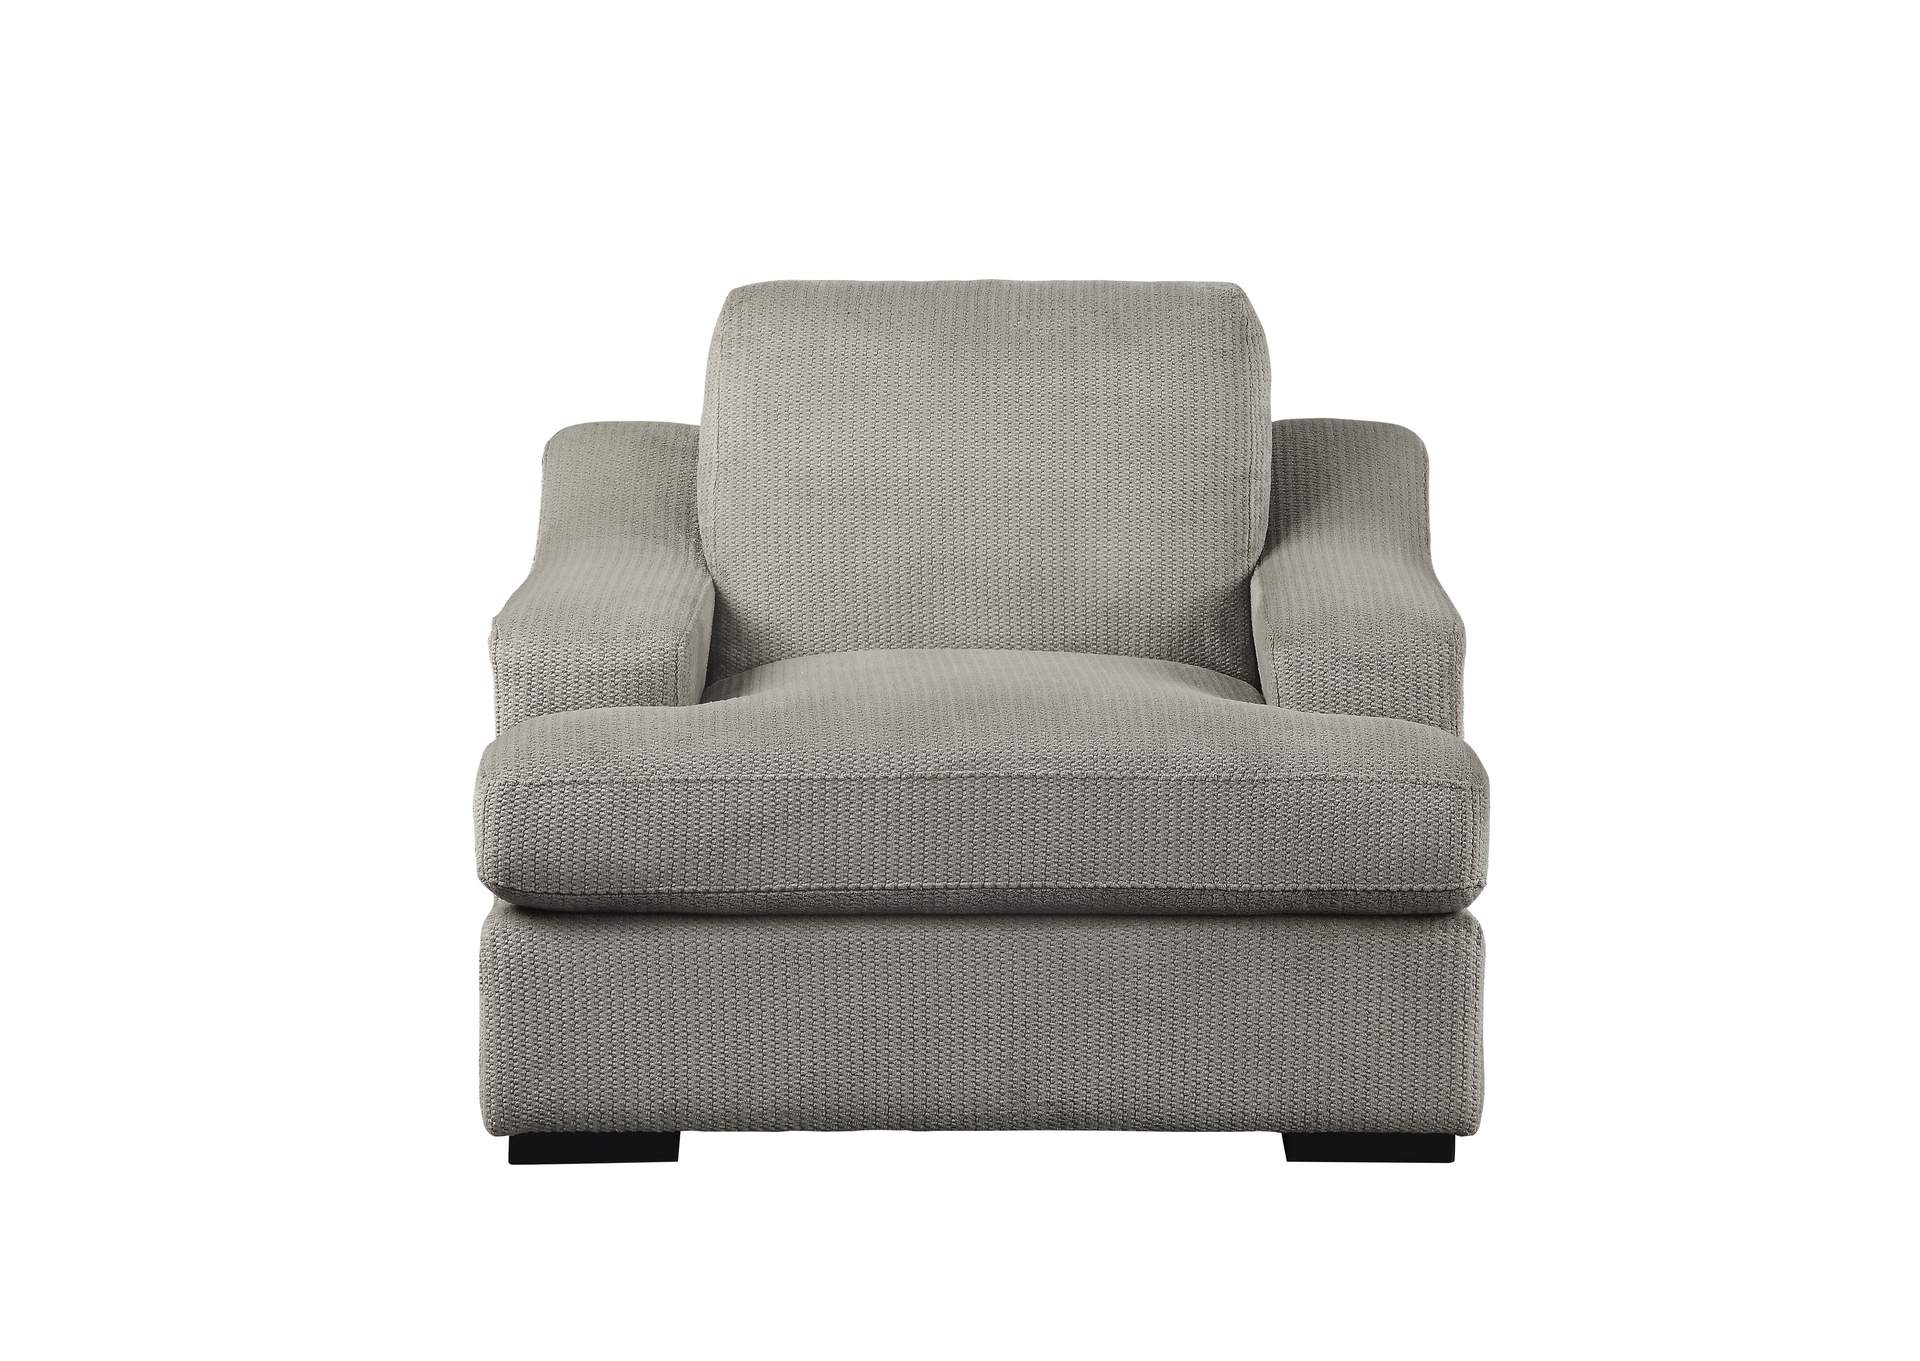 Light Gray Chair Best Buy Furniture And Mattress